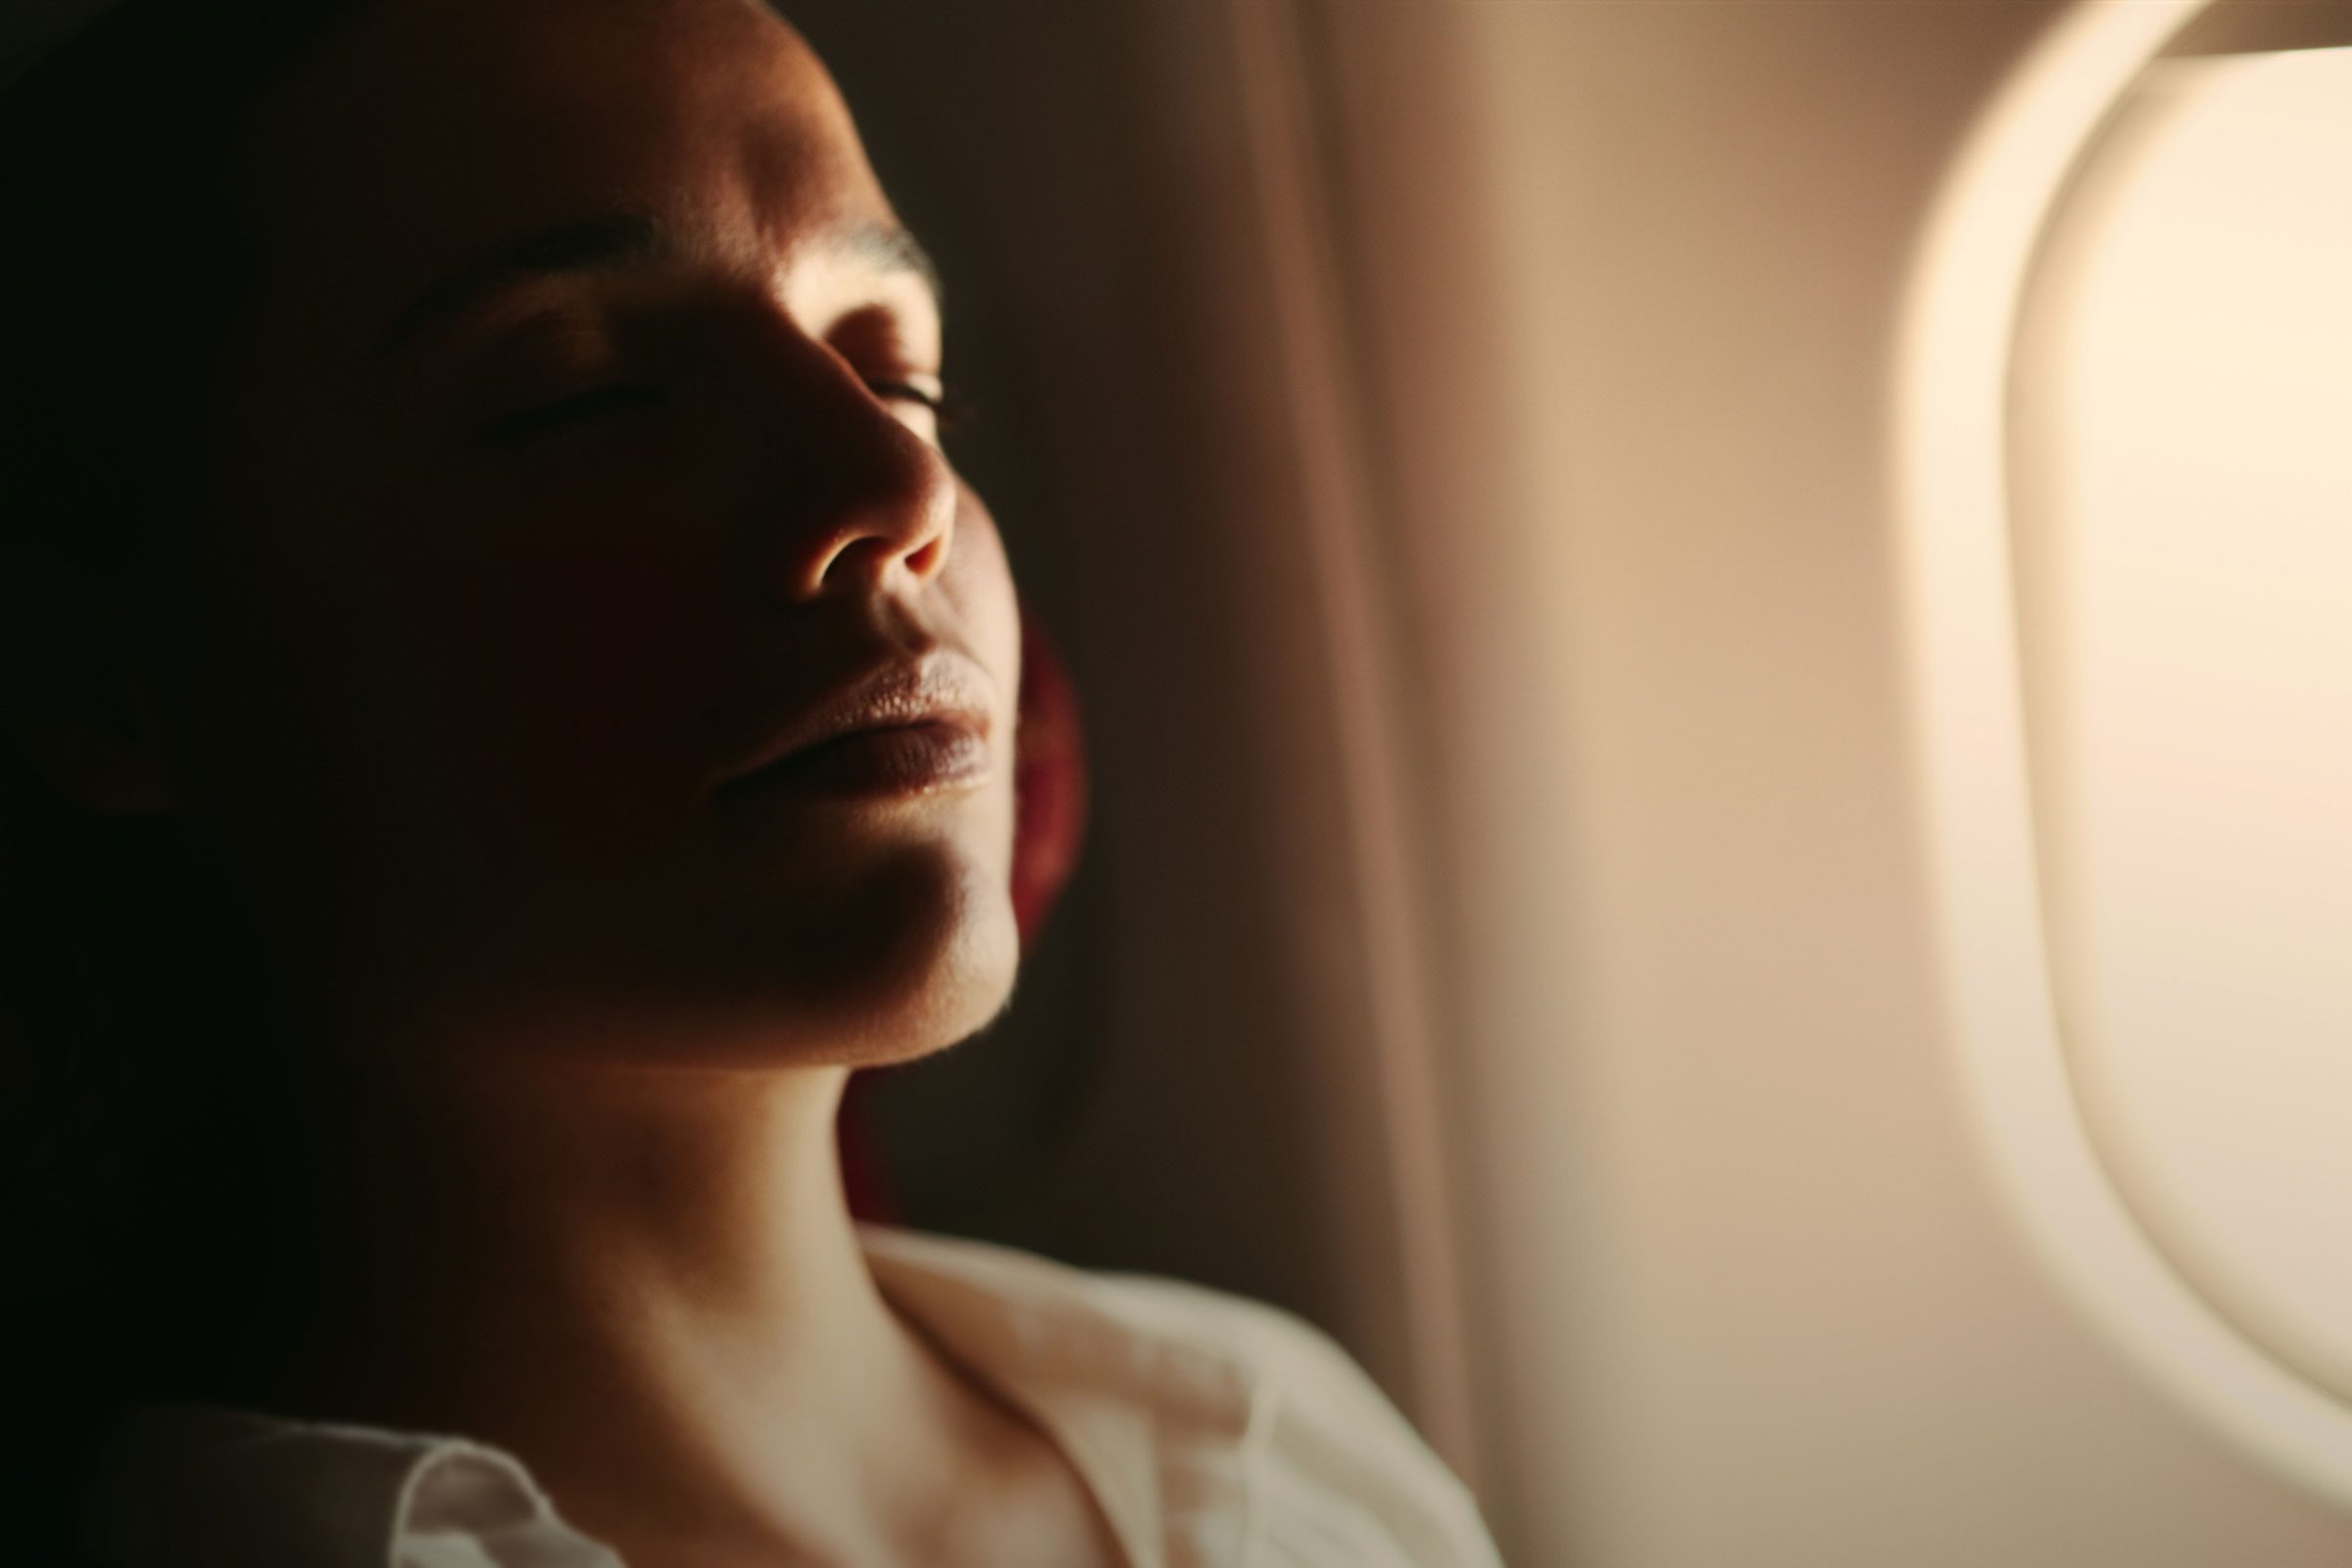 How To Sleep Well On An Airplane Reader's Digest